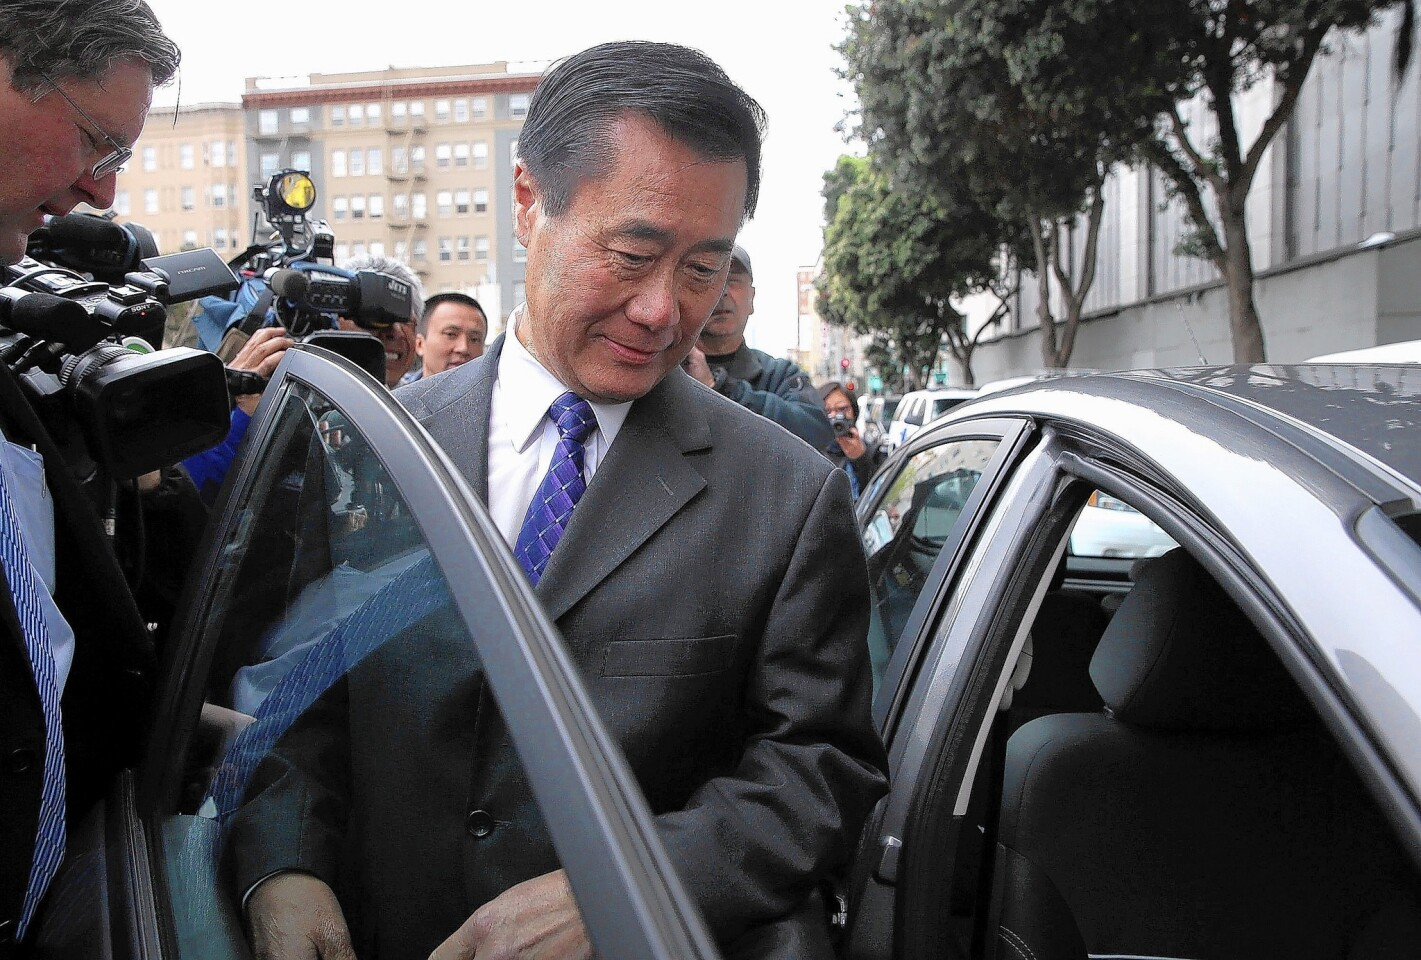 State Sen. Leland Yee leaves the Federal Building in March after a court appearance. Yee was arrested by FBI agents on charges of corruption and conspiring to illegally traffic firearms.